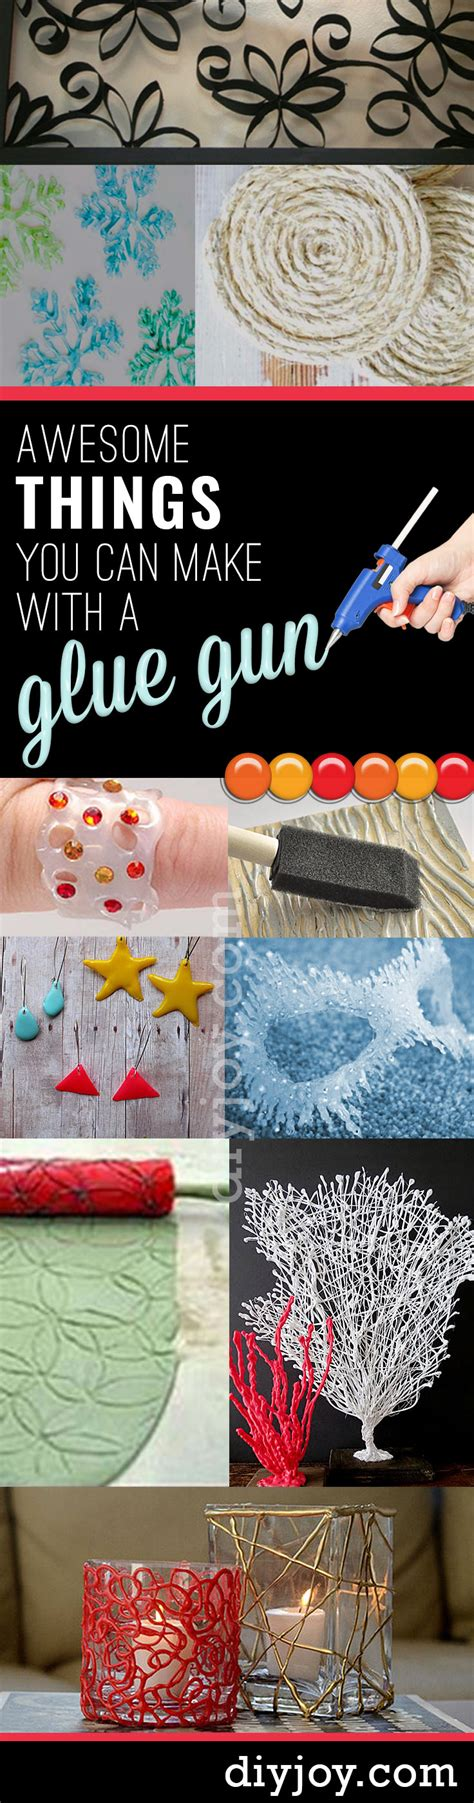 amazing diy crafts 38 unbelievably cool things you can make with a glue gun